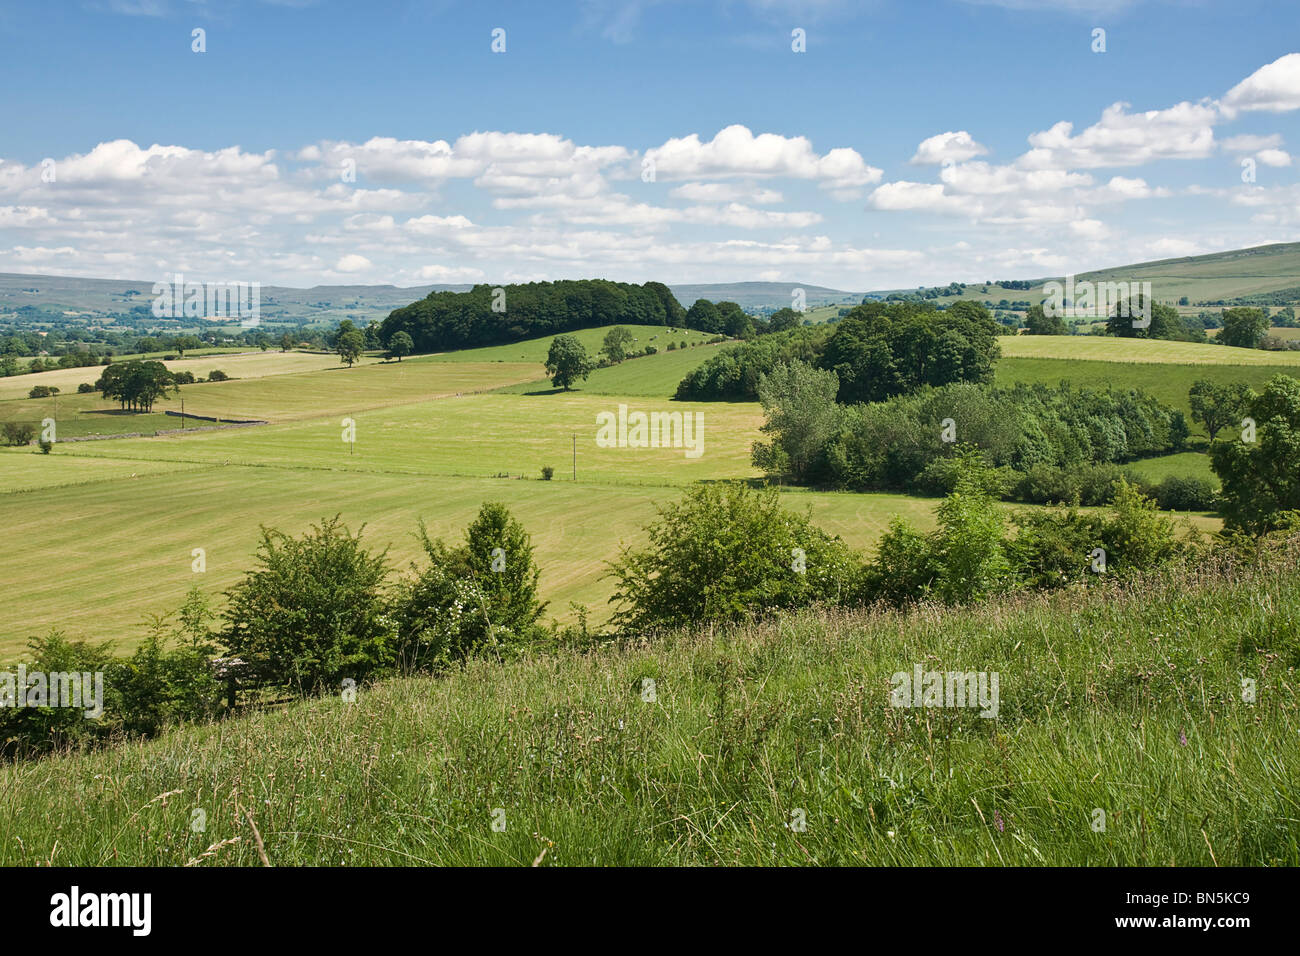 Farmland near Sedbergh in the Upper Eden valley, Cumbria. The picture shows grassland after cutting for silage. - Stock Image